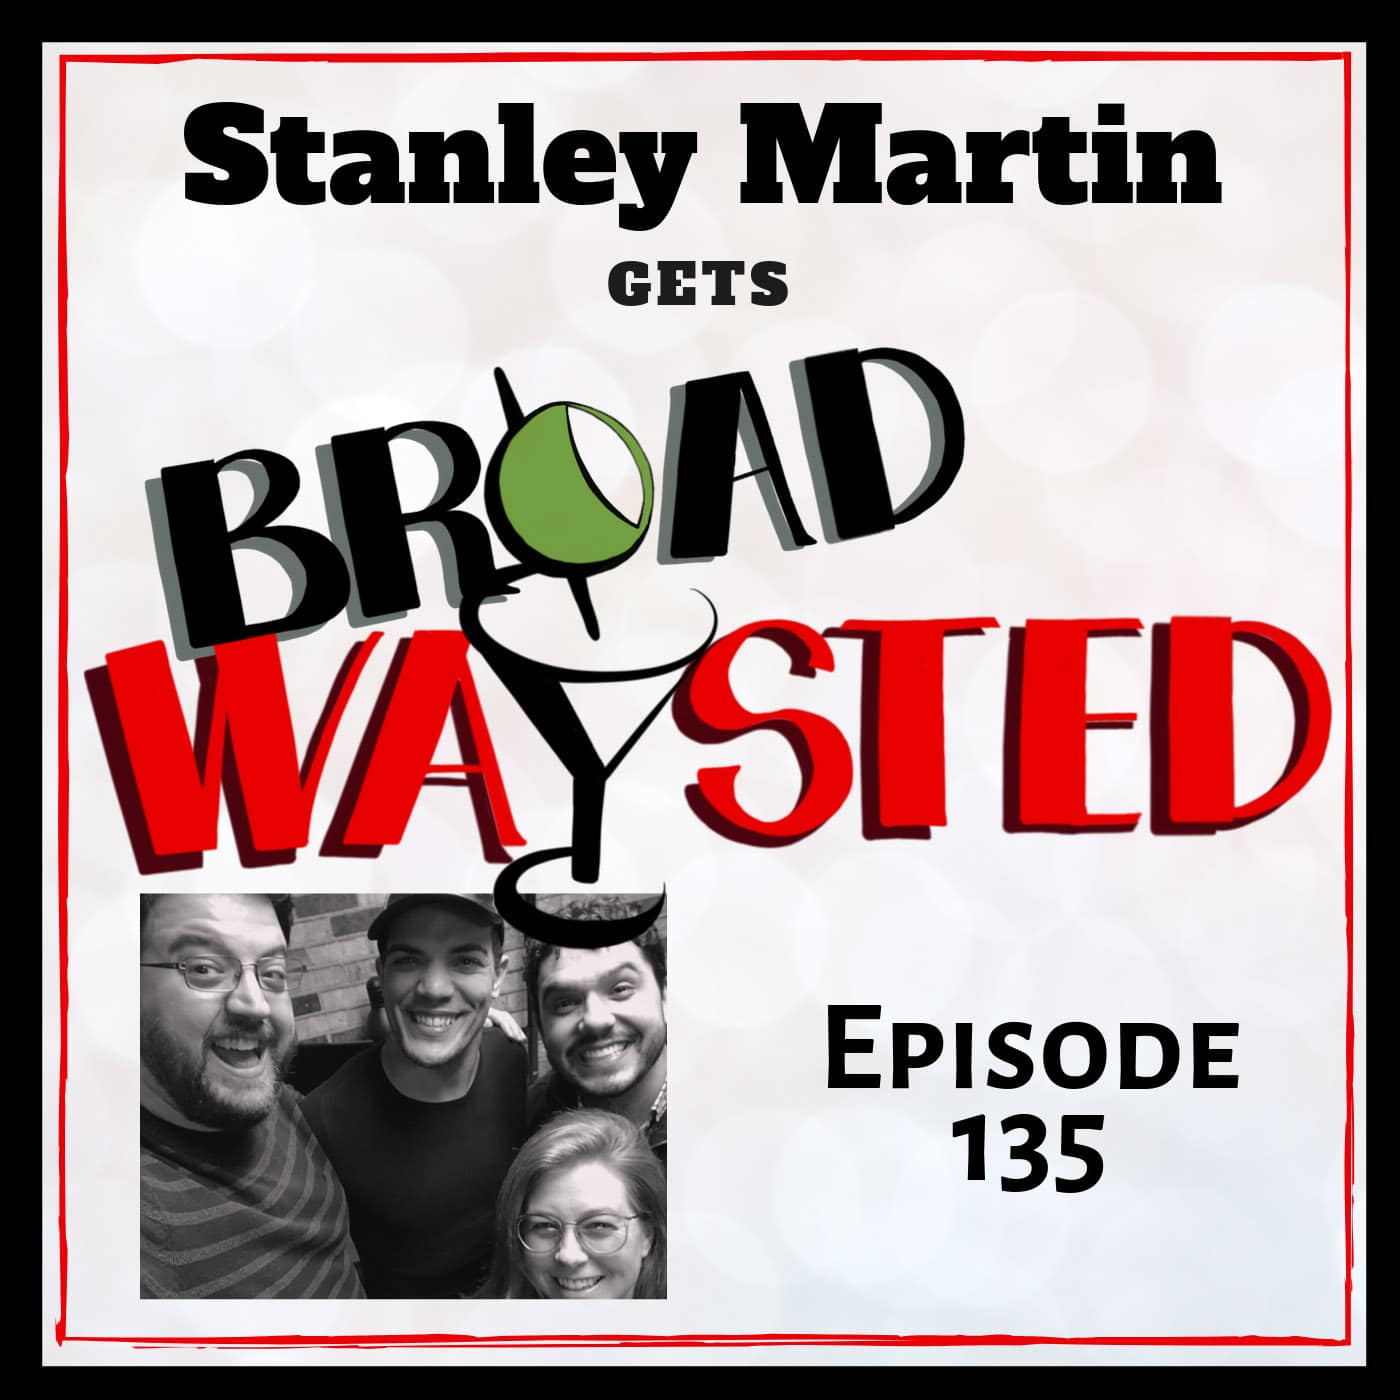 Broadwaysted Ep 135 Stanley Martin